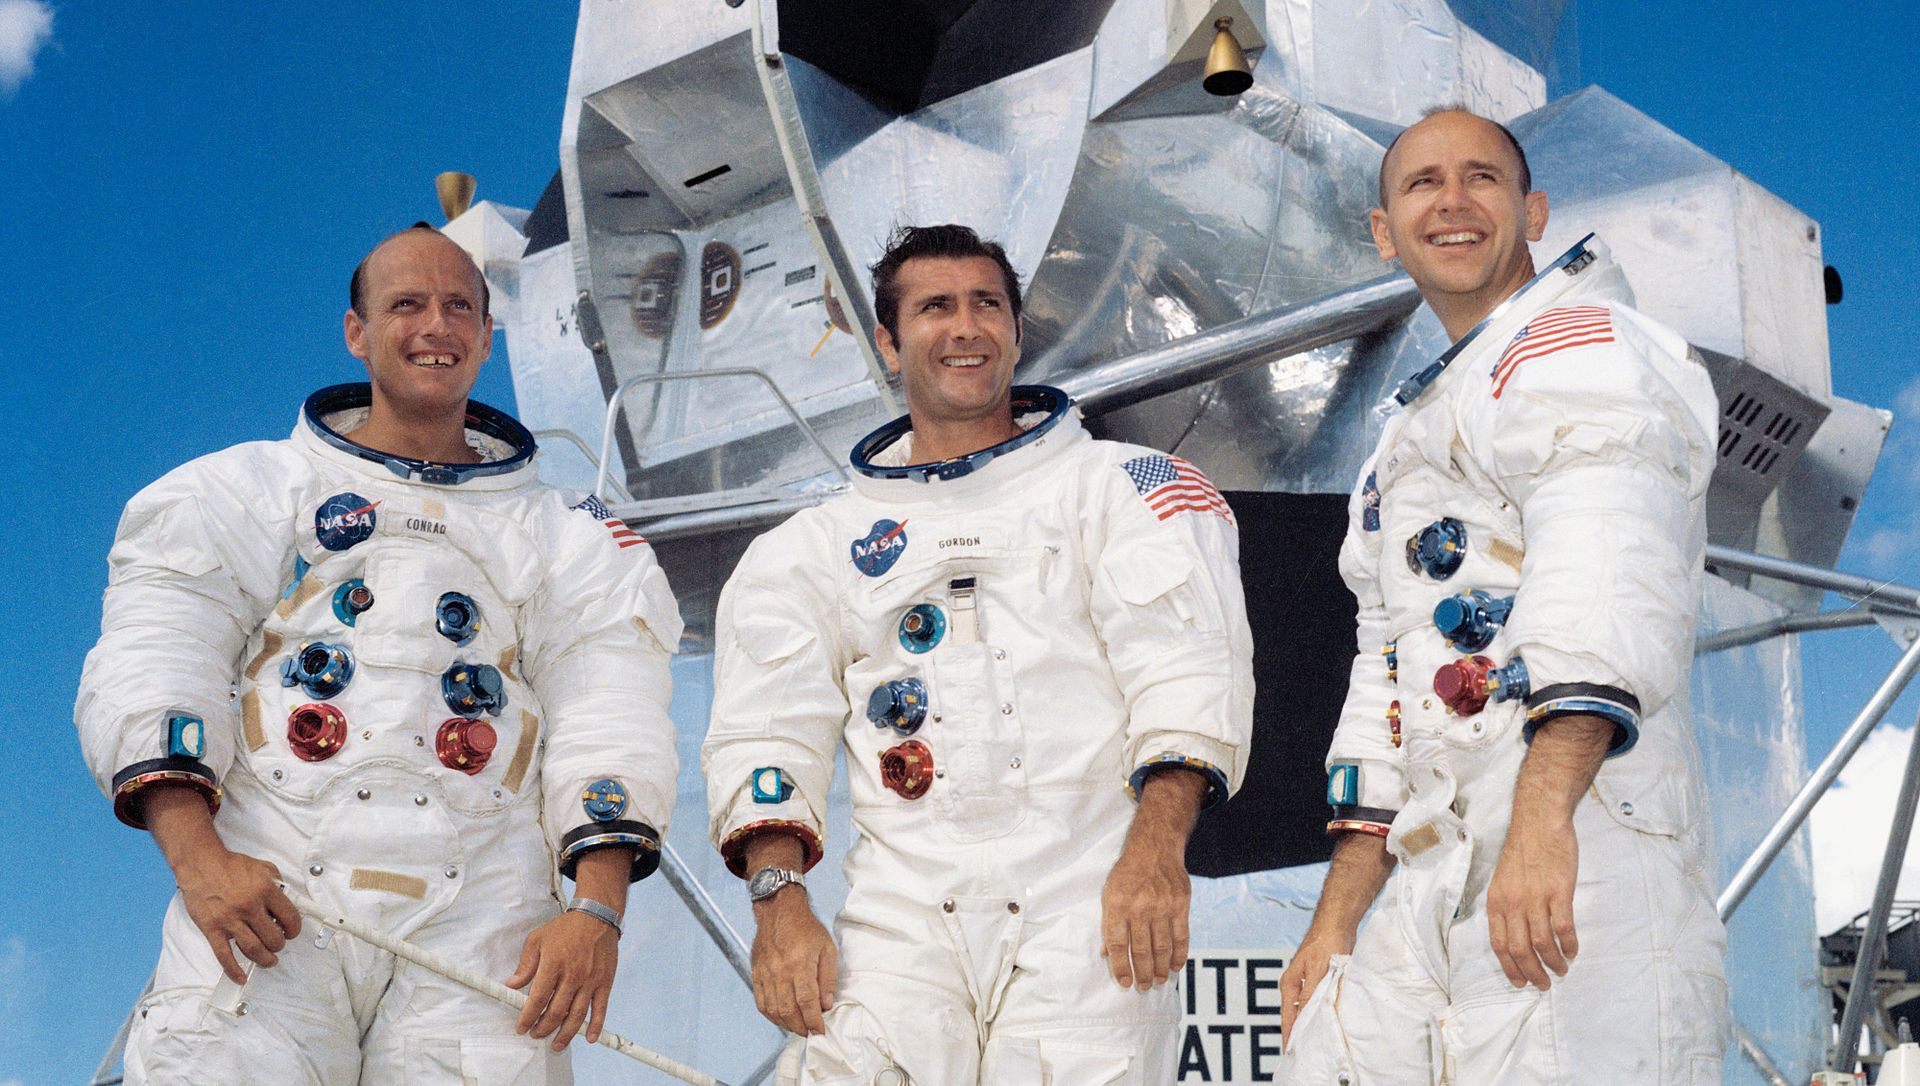 "Portrait of the prime crew of the Apollo 12 lunar landing mission. From left to right they are: Commander, Charles ""Pete"" Conrad Jr.; Command Module pilot, Richard F. Gordon Jr.; and Lunar Module pilot, Alan L.Bean. The Apollo 12 mission was the second lunar landing mission in which the third and fourth American astronauts set foot upon the Moon. This mission was highlighted by the Lunar Module nicknamed ""Intrepid"" landing within a few hundred yards of a Surveyor probe which was sent to the Moon in April of 1967 on a mapping mission as a precursor to landing."